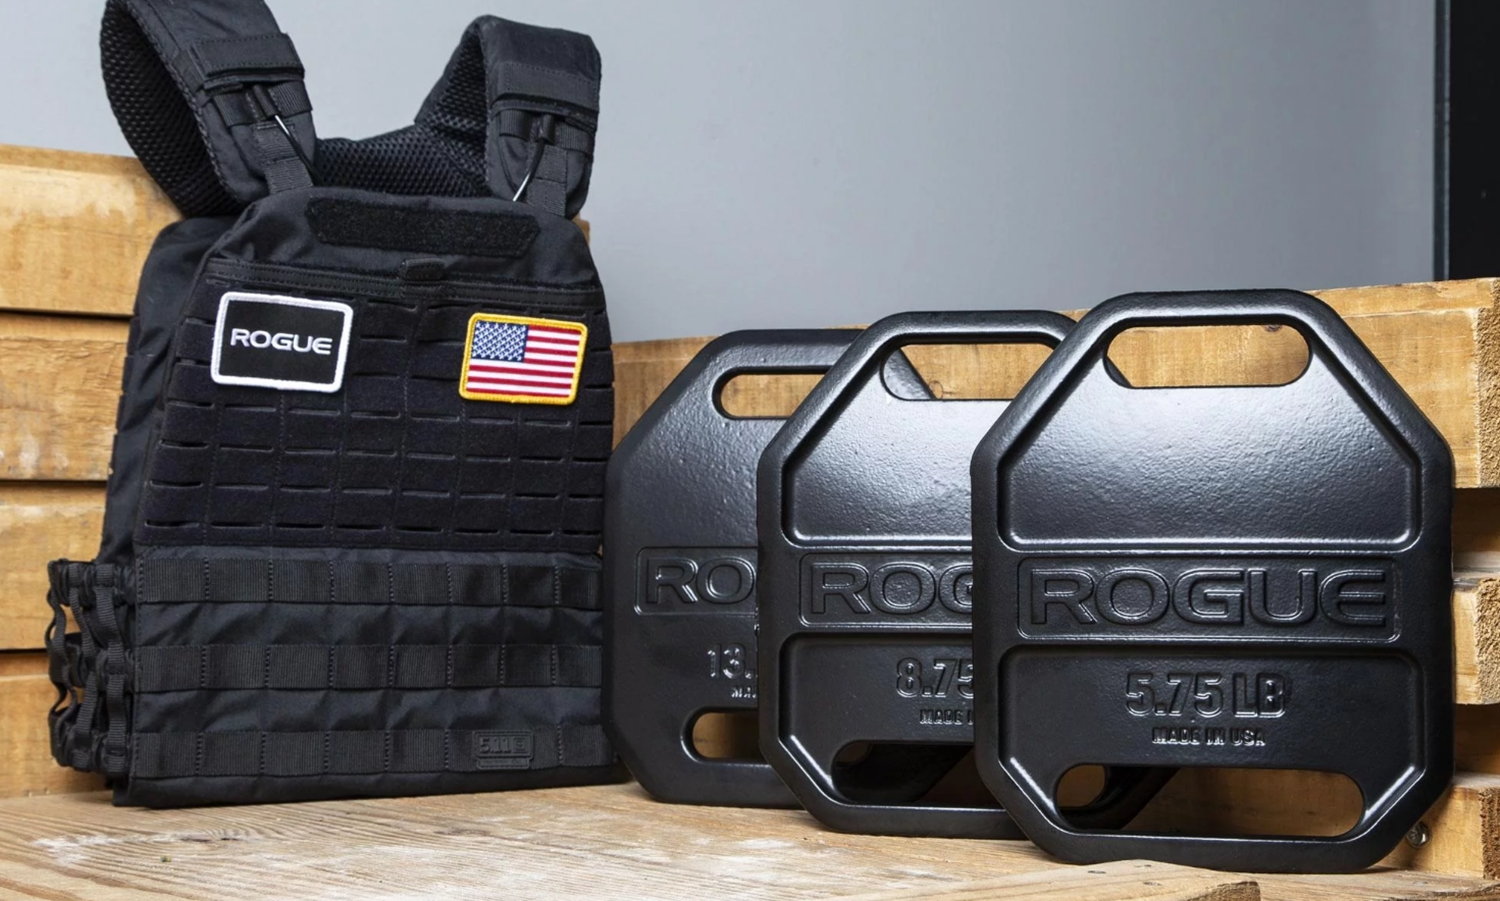 ROGUE USA CAST WEIGHT PLATES 実物 511TACTICALCROSSFITEDITION PLATE CARRIER! ファイブイレブン クロスフィット エディション プレートキャリア